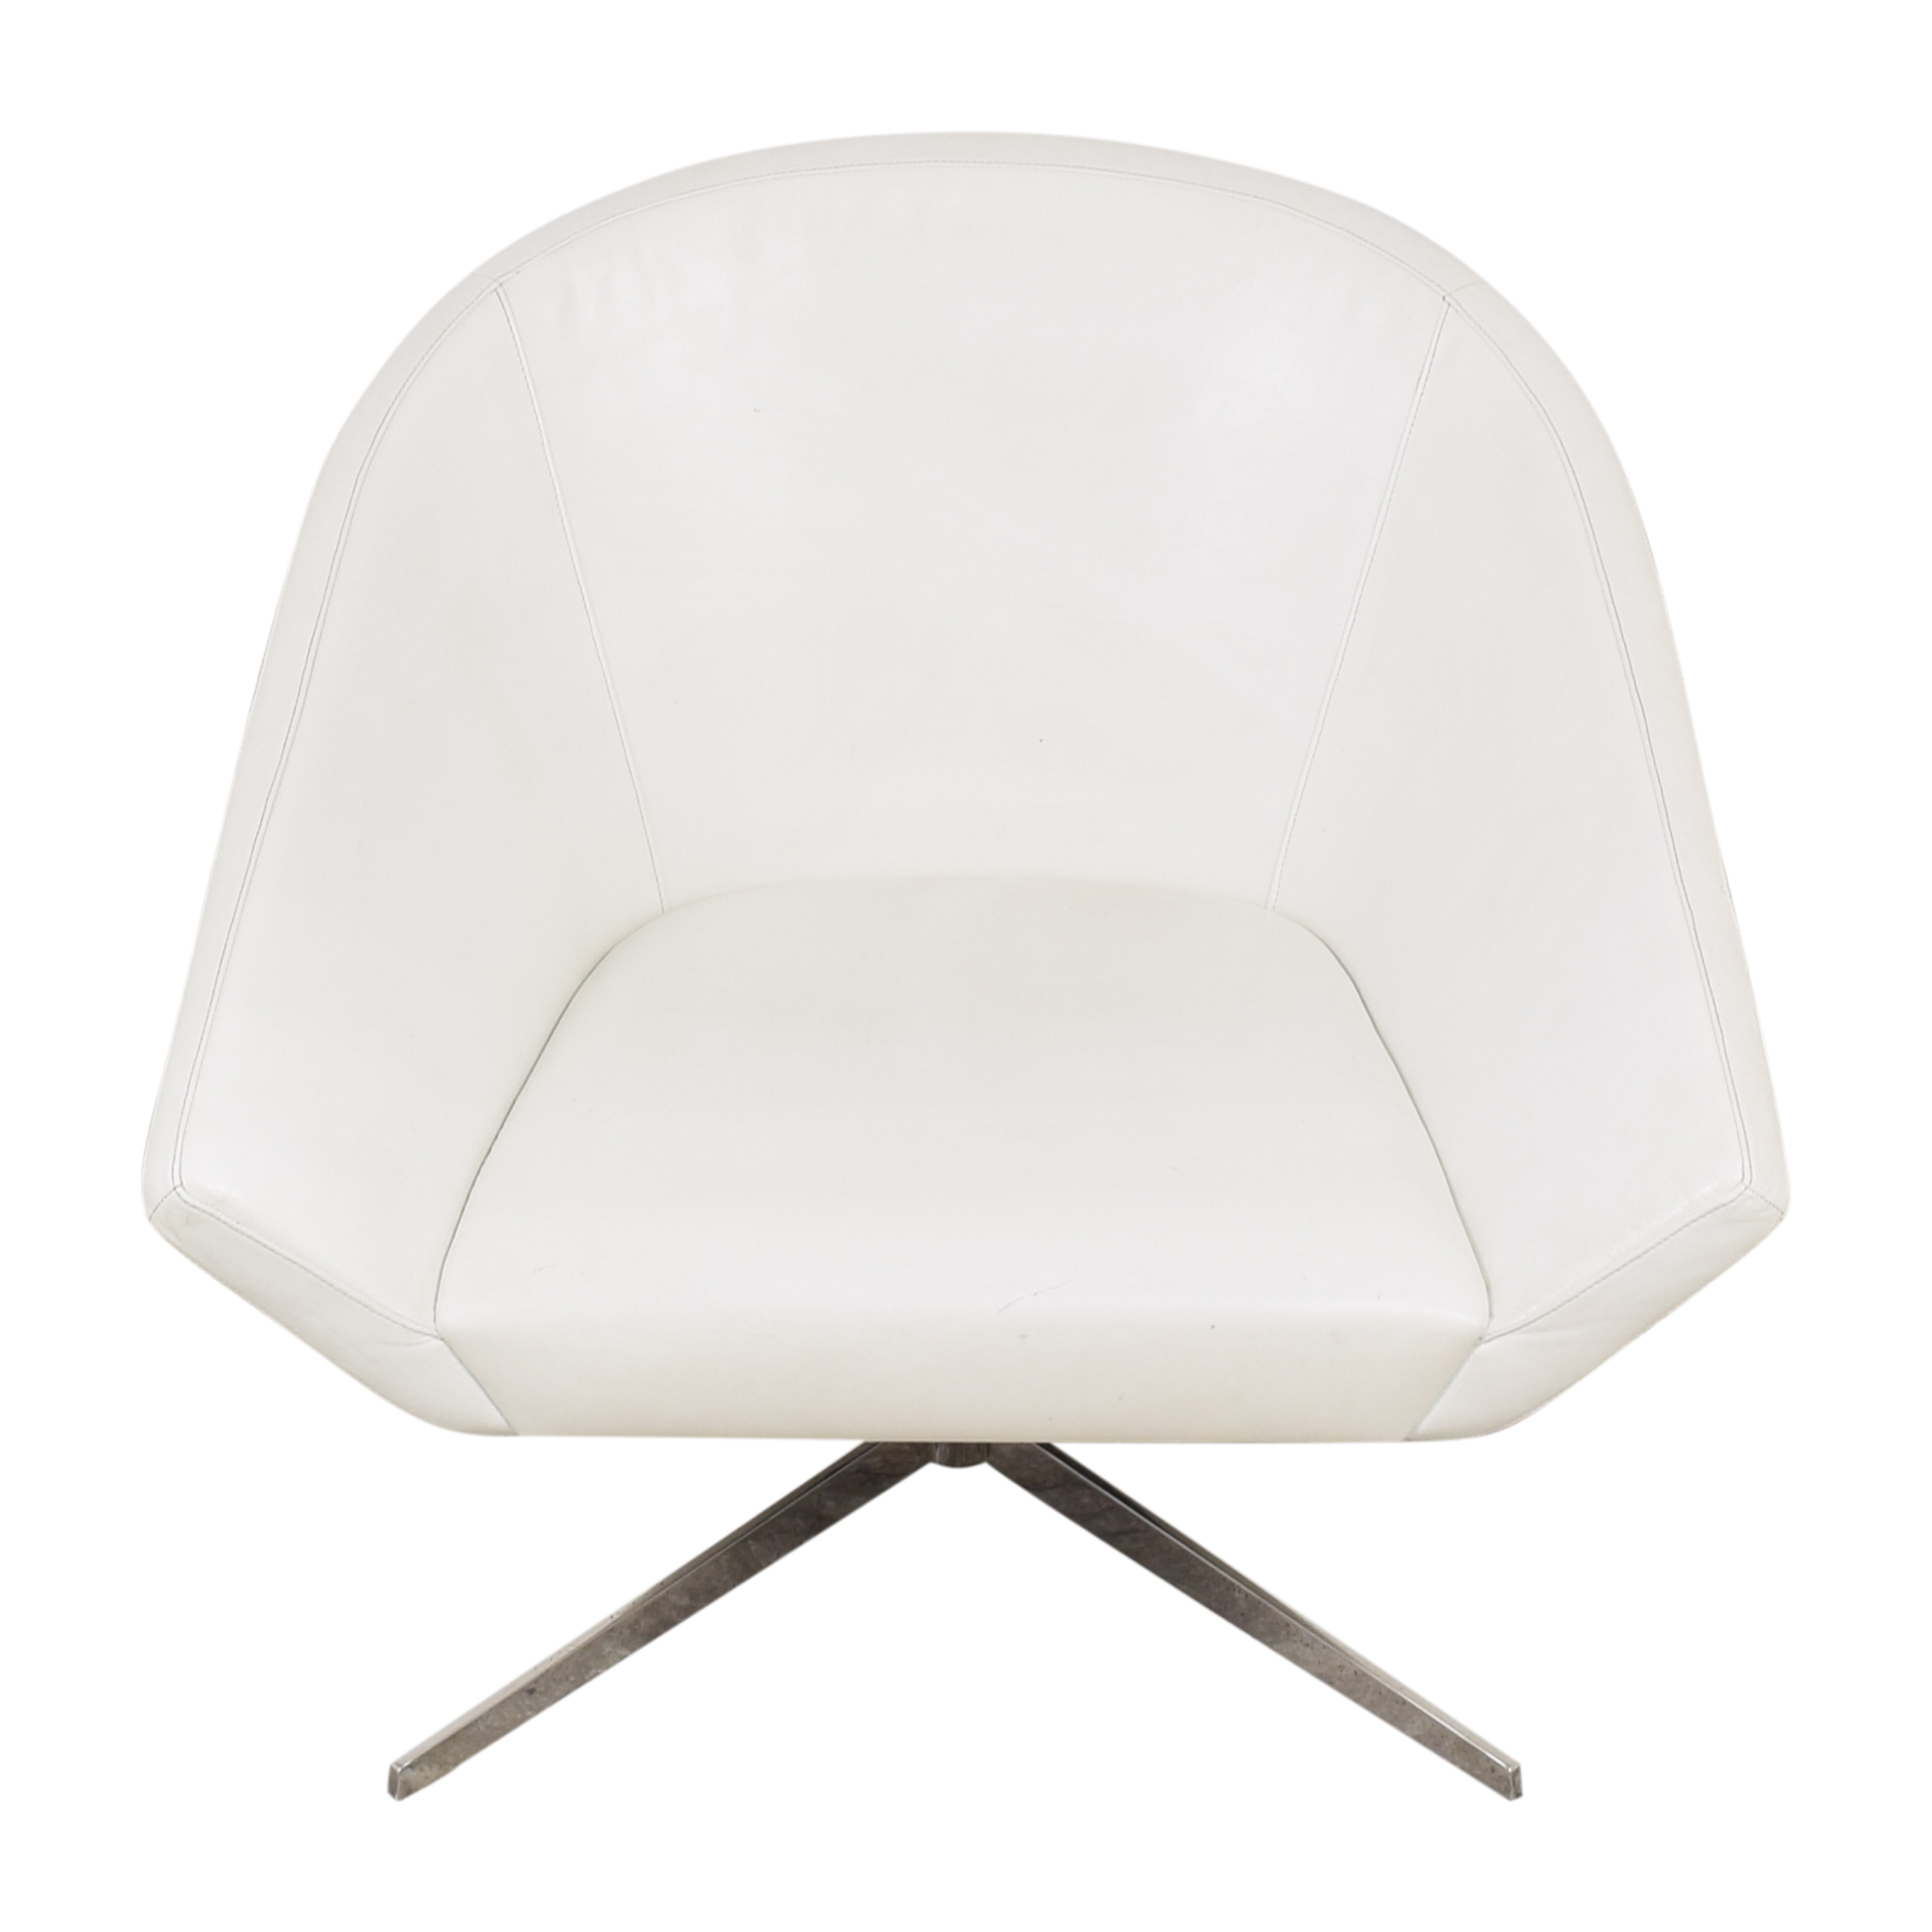 Bernhardt Bernhardt Remy Lounge Chair for sale